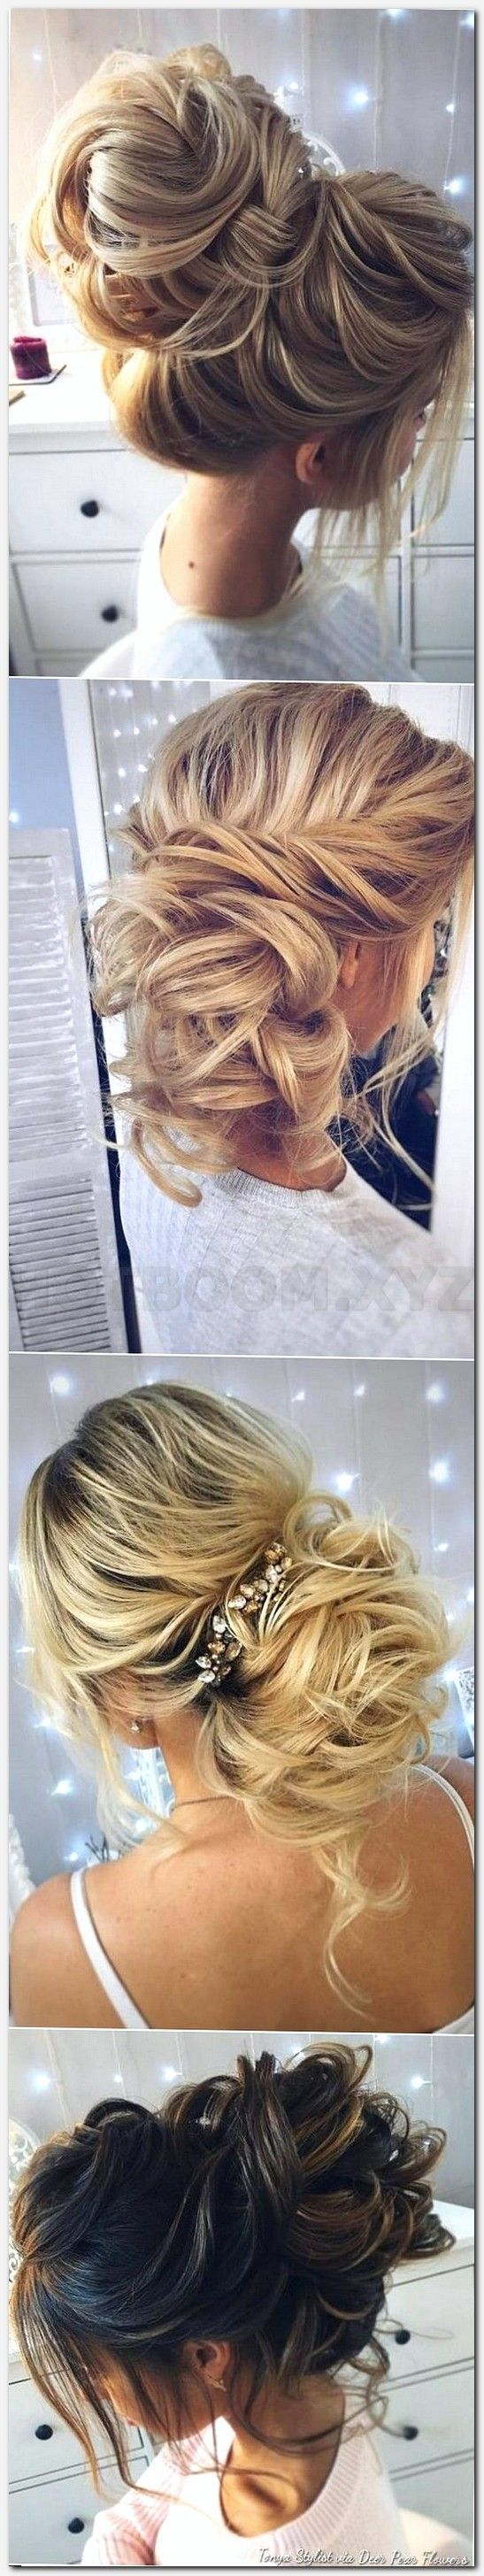 hairstyles for flat thin hair, short spiky haircuts for women, hairstyles for long braids, braiding with style, bridal updos for long hair, simple fancy hairstyles, easy quick hairstyles for kids, hairstyles for very fine thin straight hair, medium length prom hairstyles, hair design short hair, new hairstyles 2017 women, straight hair bob hairstyles, medium haircuts for 2017, hairstyle different, new haircut women's 2017, hair cut in a bob #shorthairstylesfine